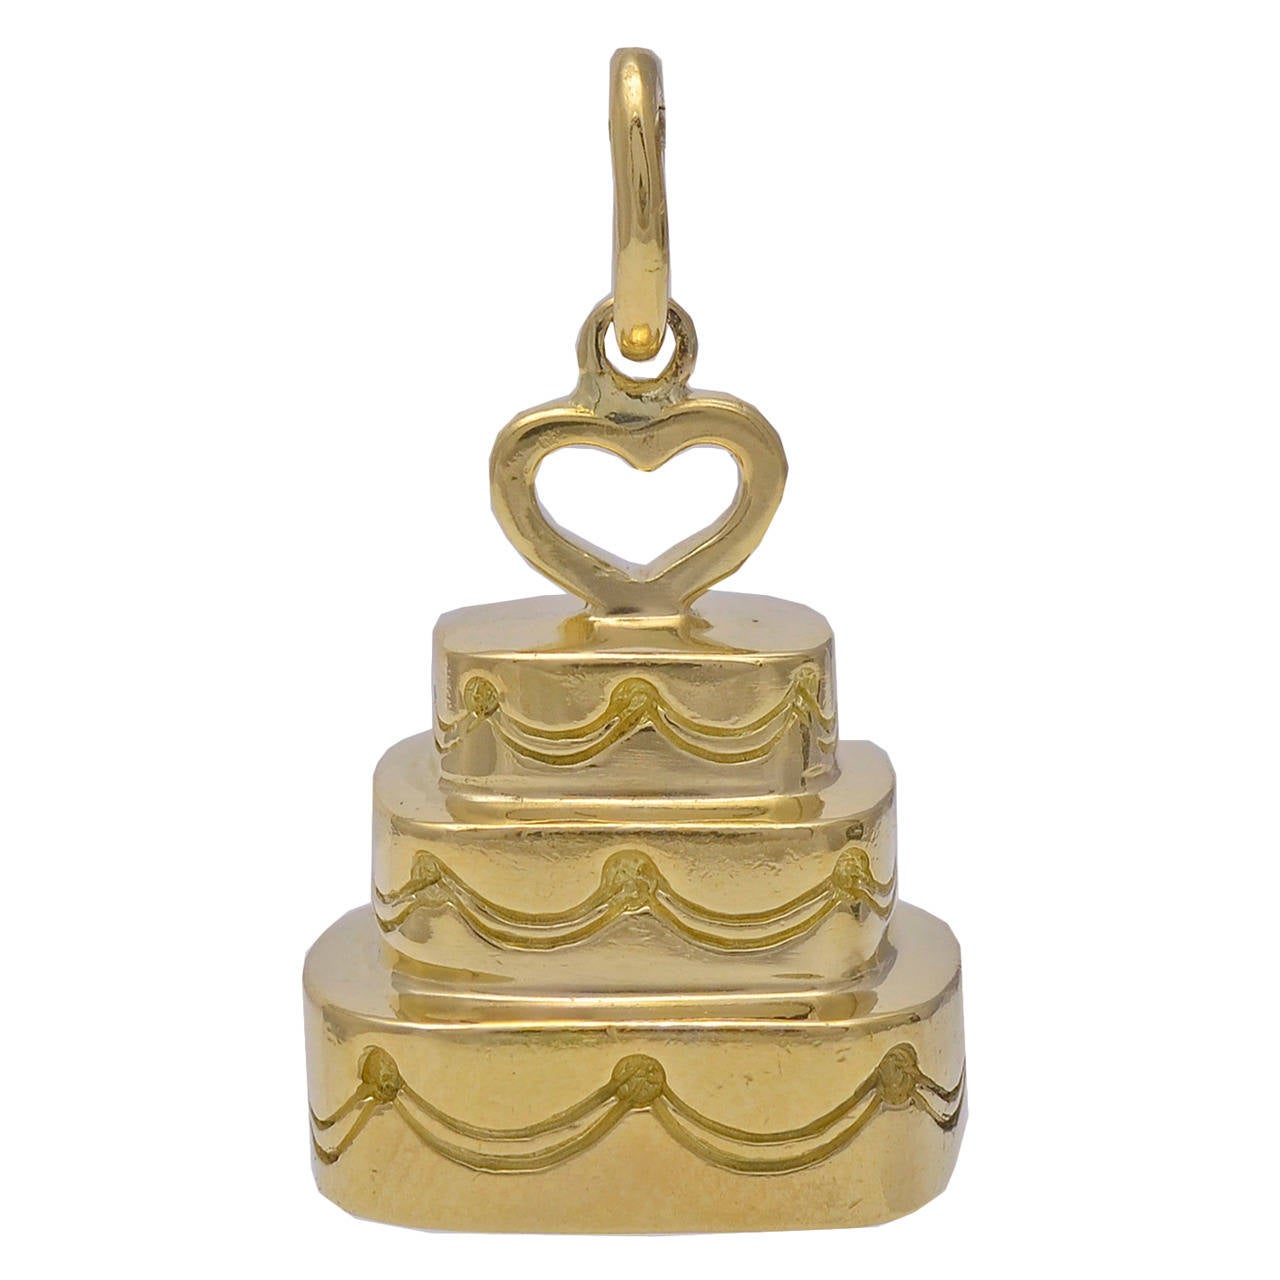 tiffany and co gold wedding cake charm at 1stdibs. Black Bedroom Furniture Sets. Home Design Ideas